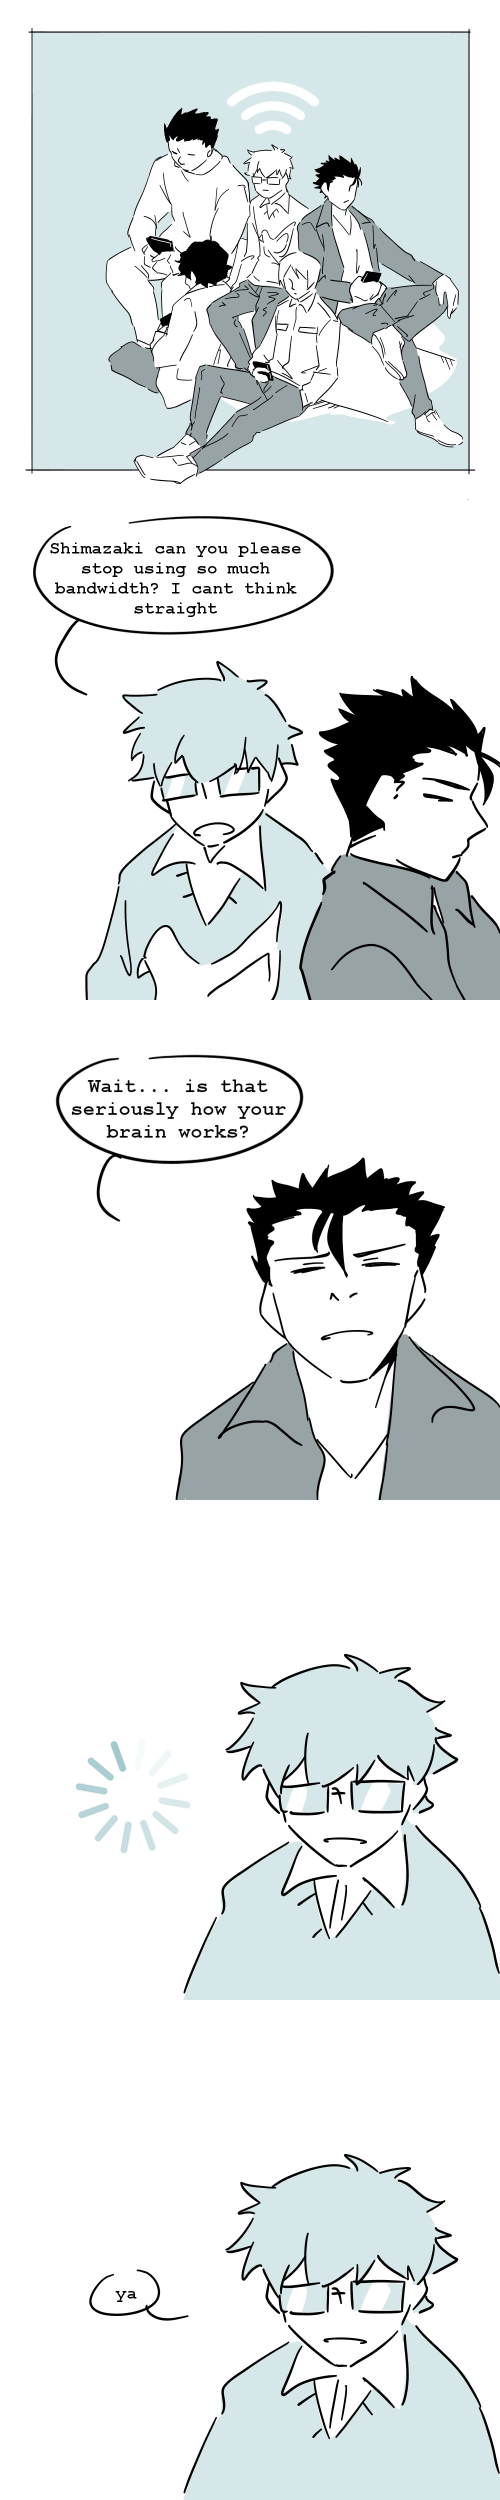 Brain, How, and Can: Shimazaki can you please  stop using  so much  bandwidth? I cant think  straight   Wait... is that  seriously how your  brain works?   IZ   ya  IZ